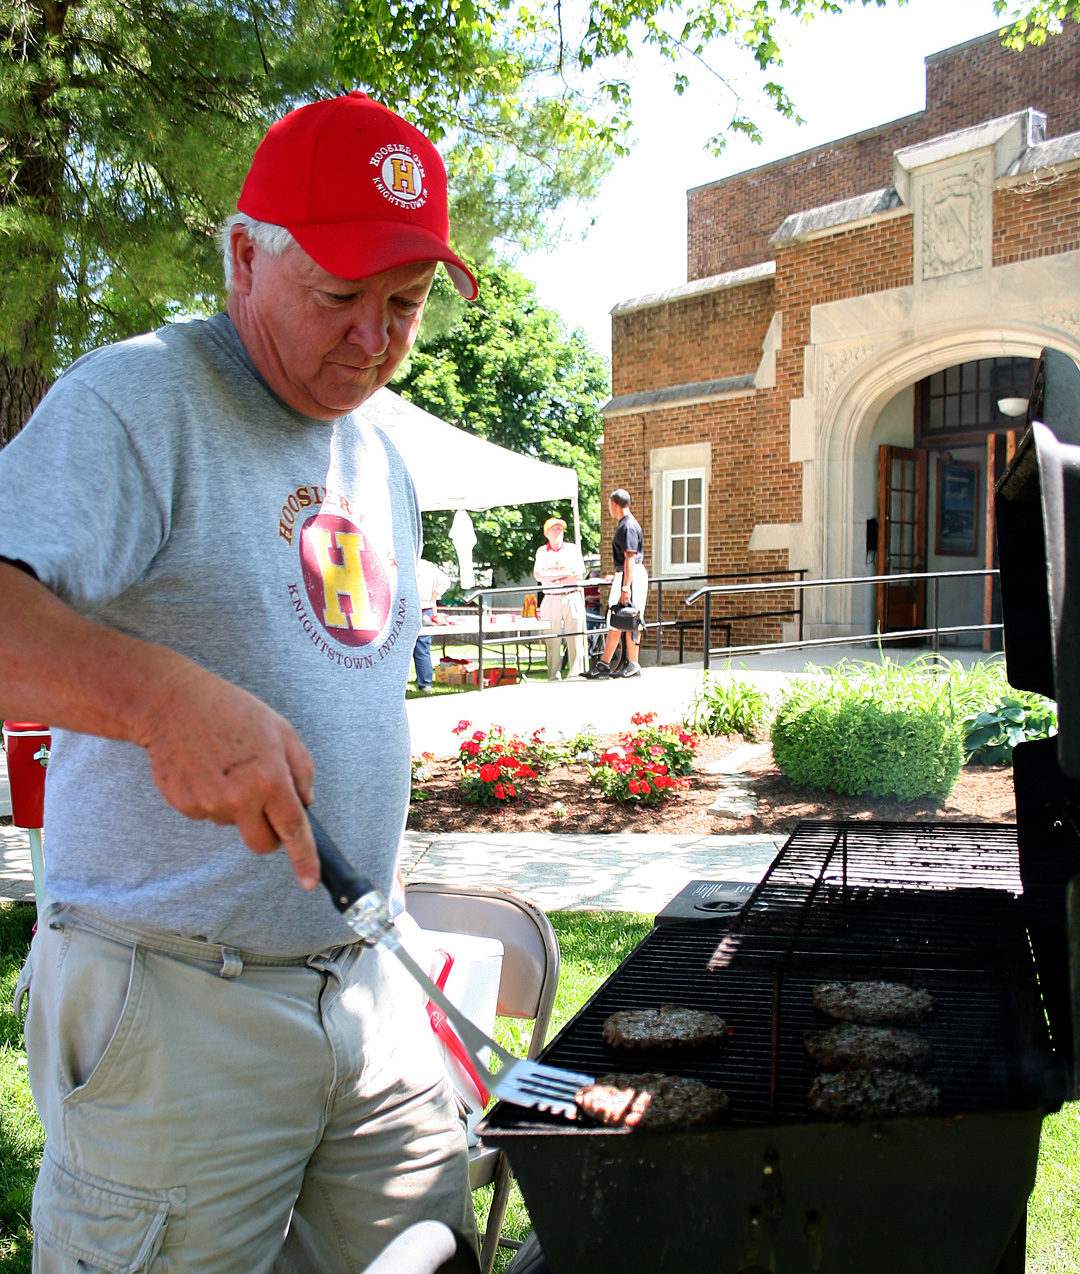 Grilling hamburgers for the concession stand in 2009, longtime Hoosier Gym volunteer Larry Loveall is no stranger to gym events. Concession stand sales bolster the gym's limited finances. That means Loveall and other gym volunteers regularly busy themselves preparing and selling hot dogs, popcorn and other items to hungry visitors.